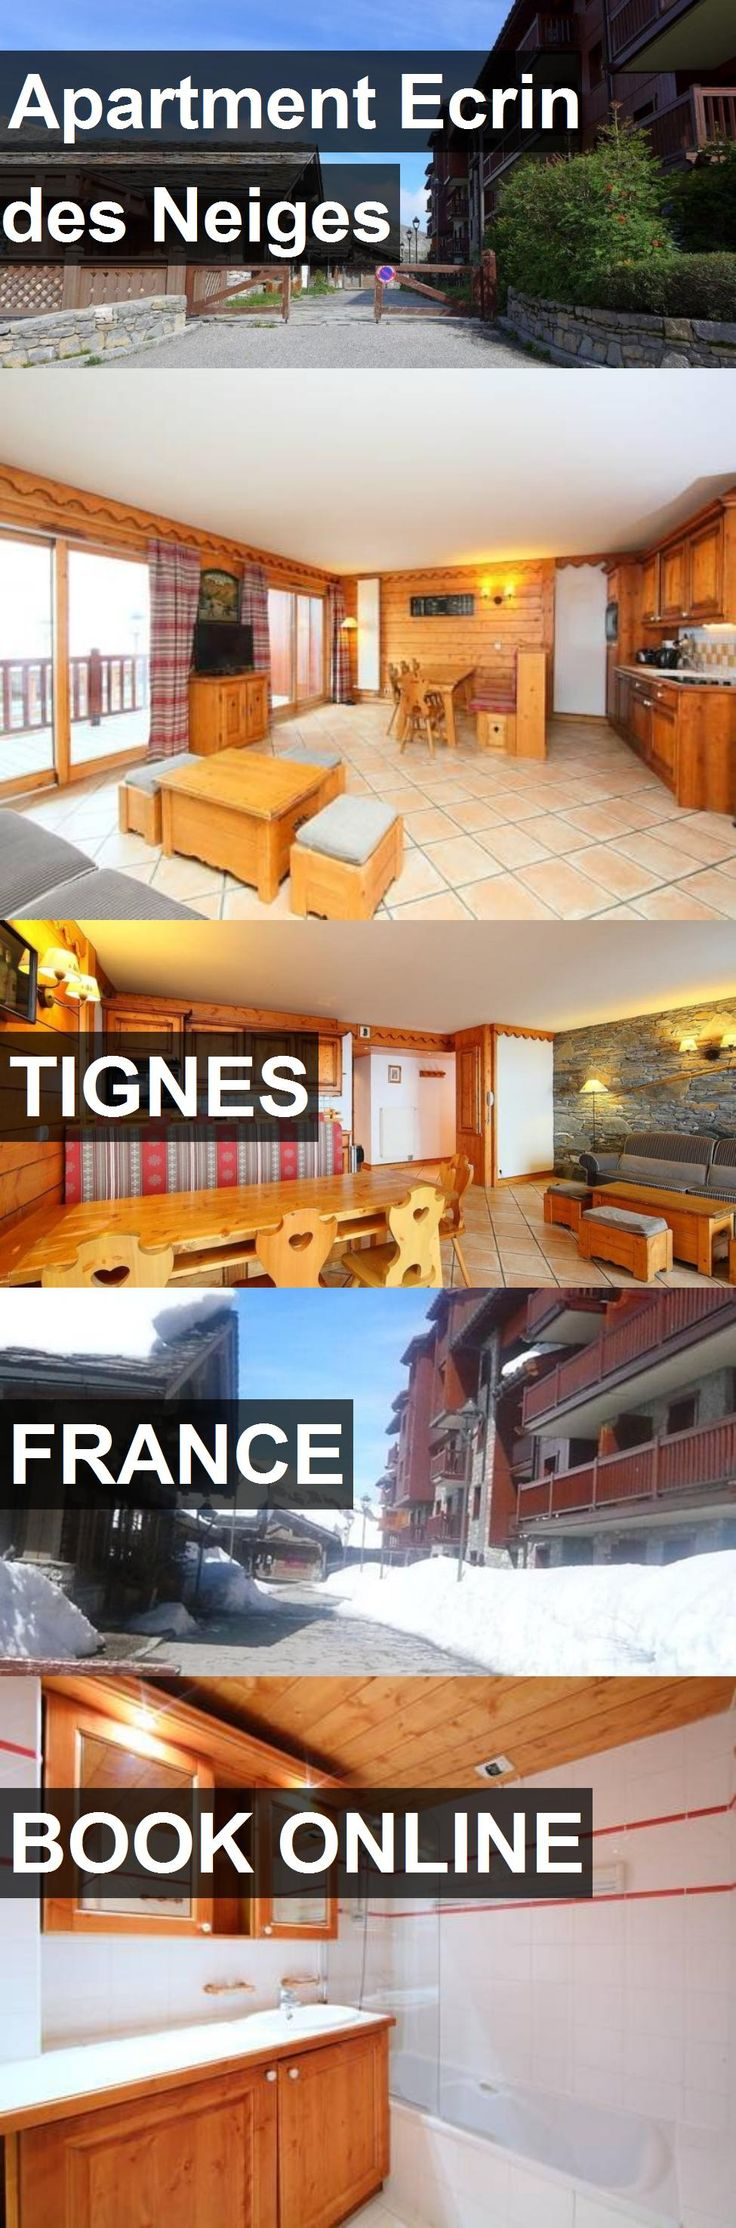 Apartment Ecrin des Neiges in Tignes, France. For more information, photos, reviews and best prices please follow the link. #France #Tignes #travel #vacation #apartment